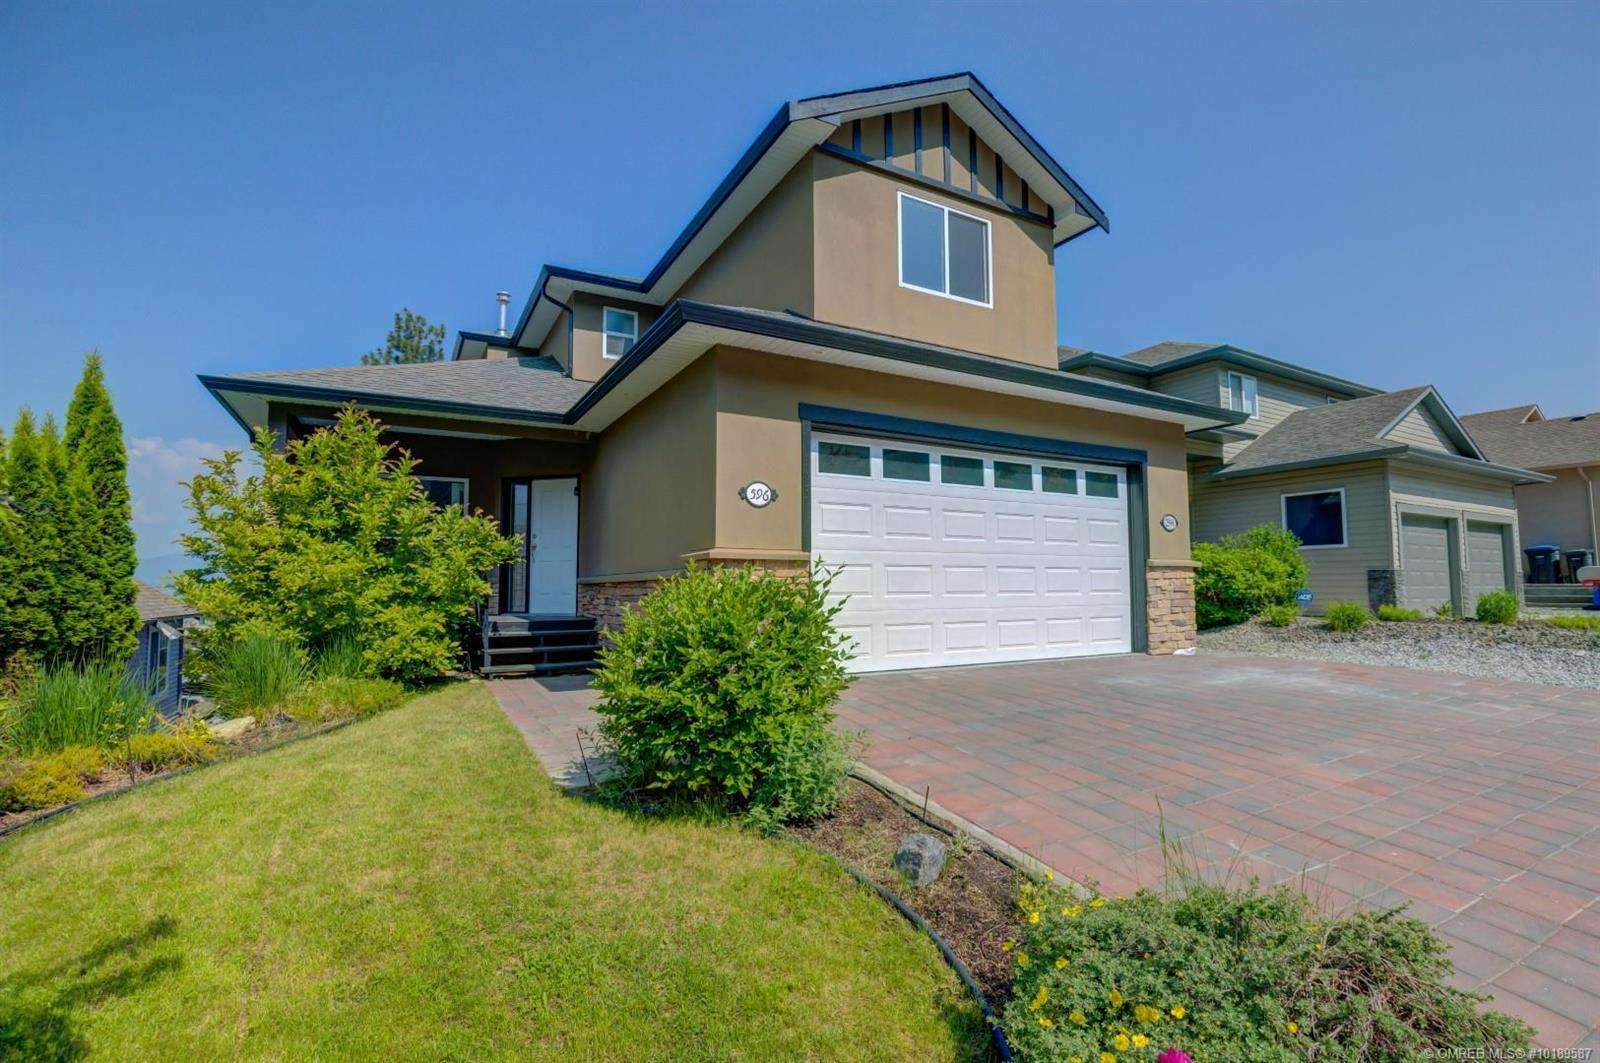 Removed: 596 Arrowleaf Lane, Kelowna, BC - Removed on 2019-09-16 14:21:30